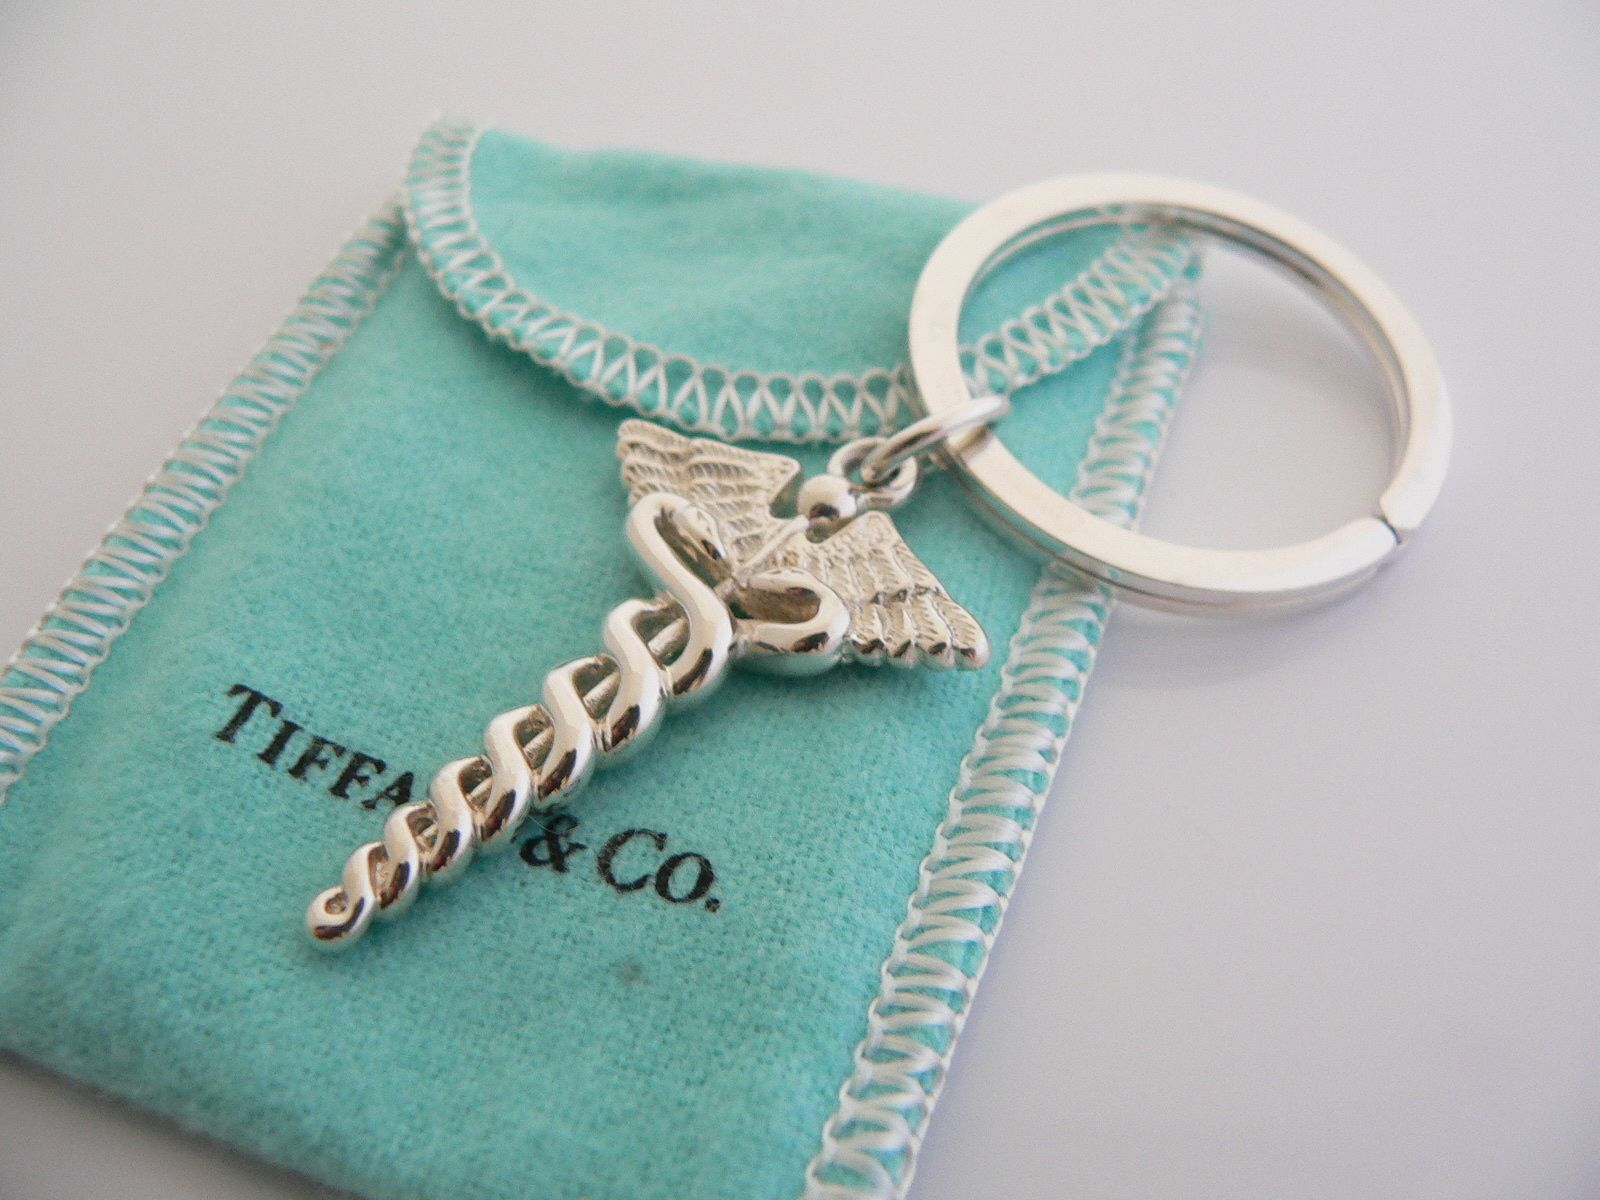 Beautiful tiffany co keychain great idea for grad - Graduation gift for interior design student ...